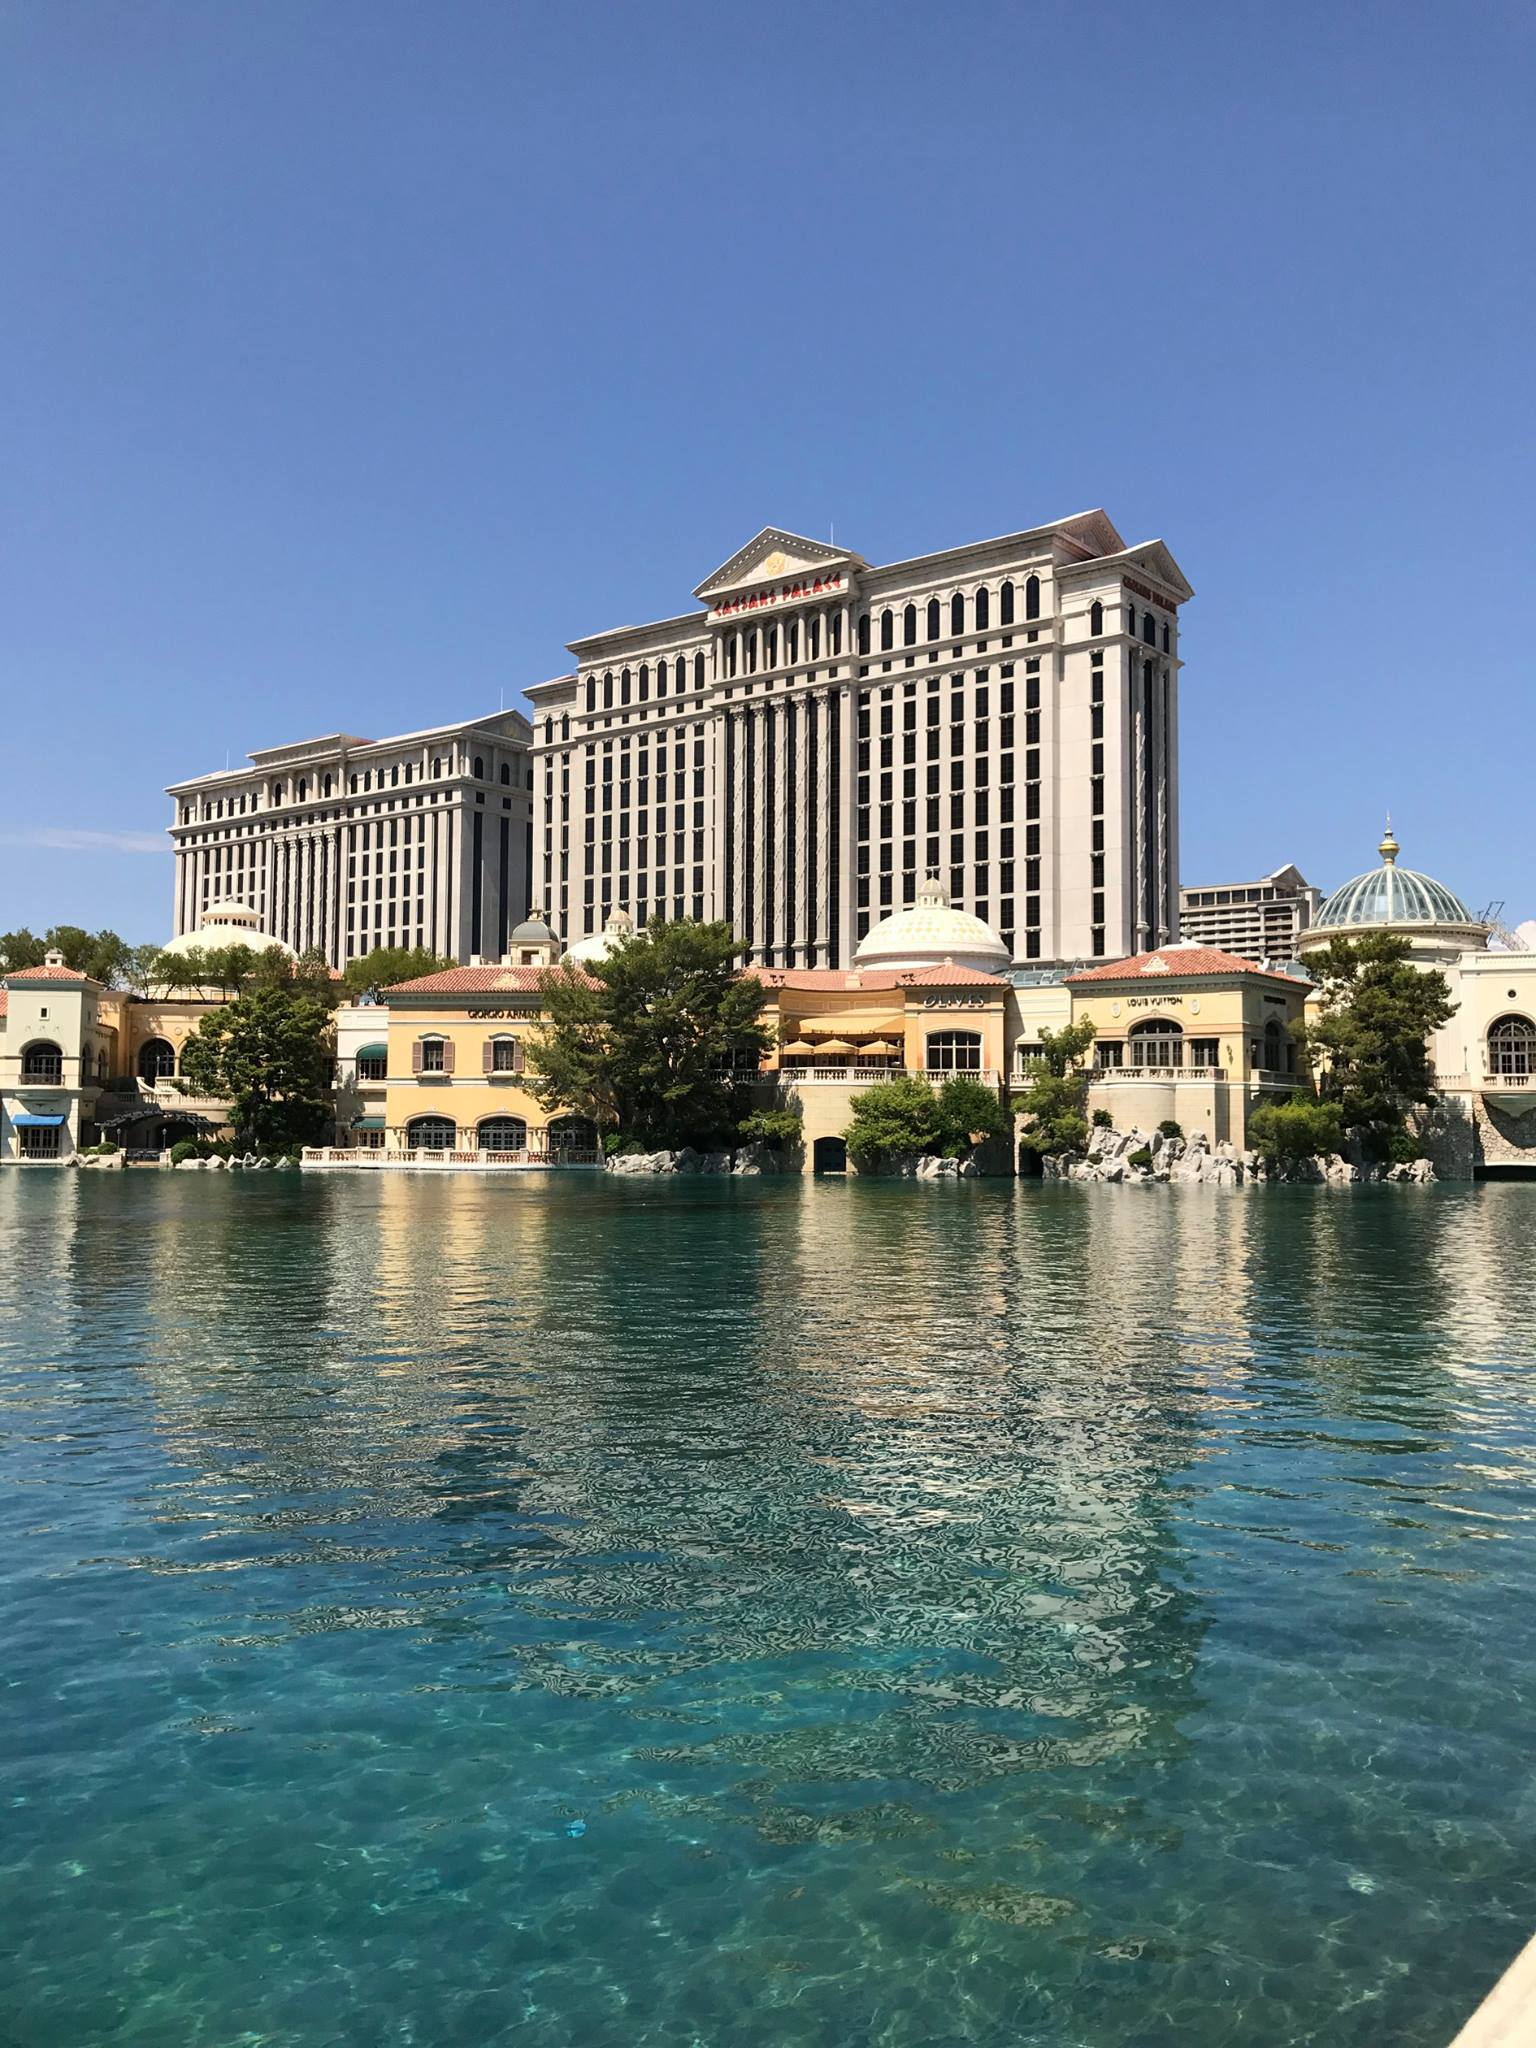 Picture of Caesars Palace hotel and lagoon